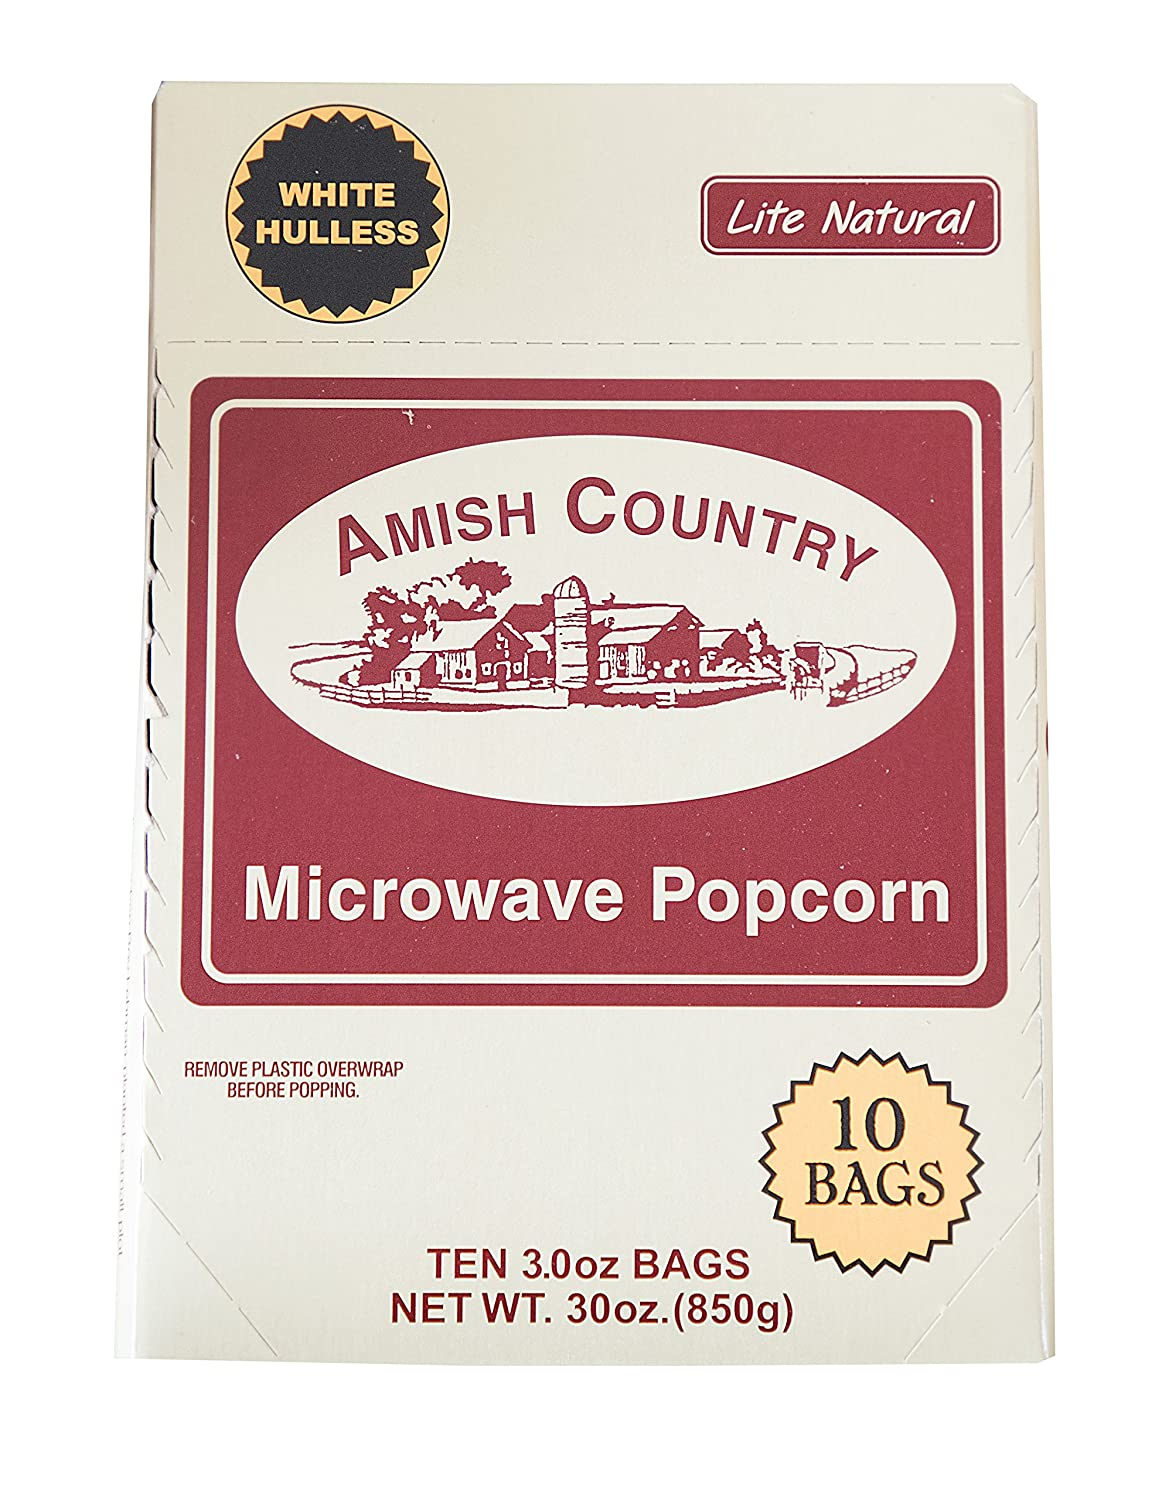 Amish Country Popcorn   Old Fashioned Microwave Popcorn   10 Bags Lite Natural White Hulless   Old Fashioned, Non GMO, Gluten Free, Microwaveable and Kosher with Recipe Guide (10 Bags)